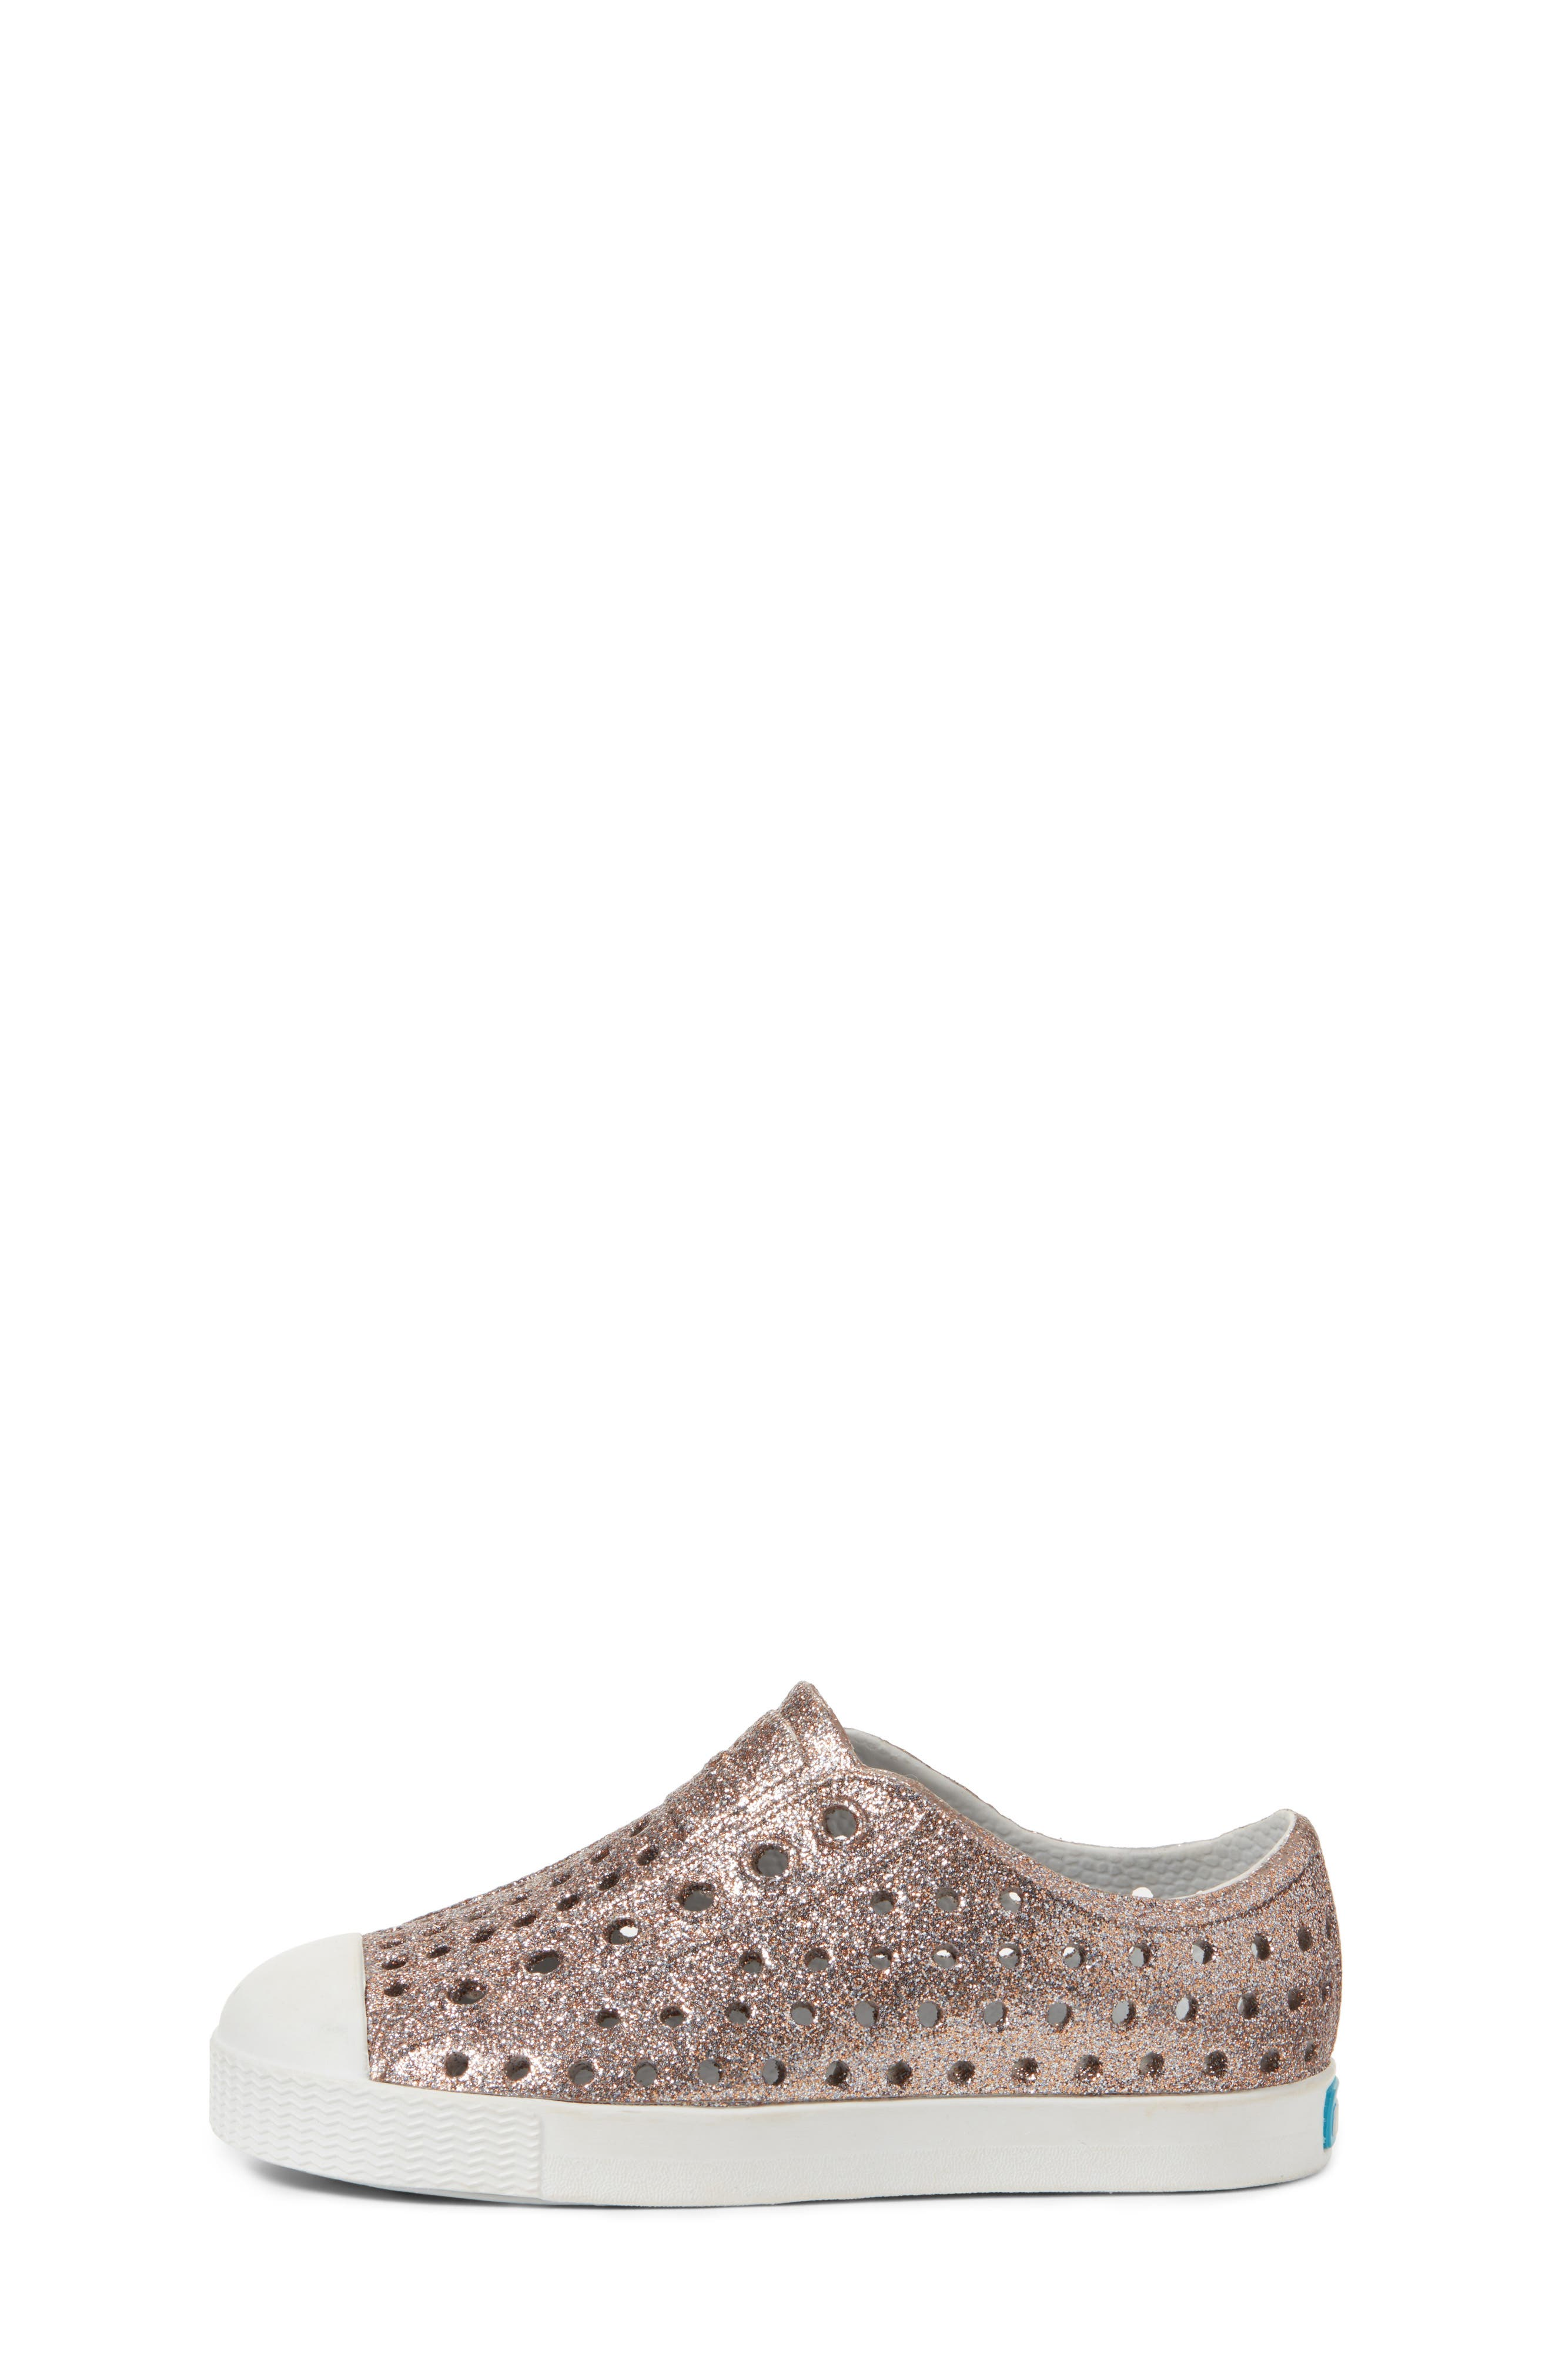 Jefferson - Bling Glitter Slip-On Sneaker,                             Alternate thumbnail 3, color,                             Metallic Bling/ Shell White